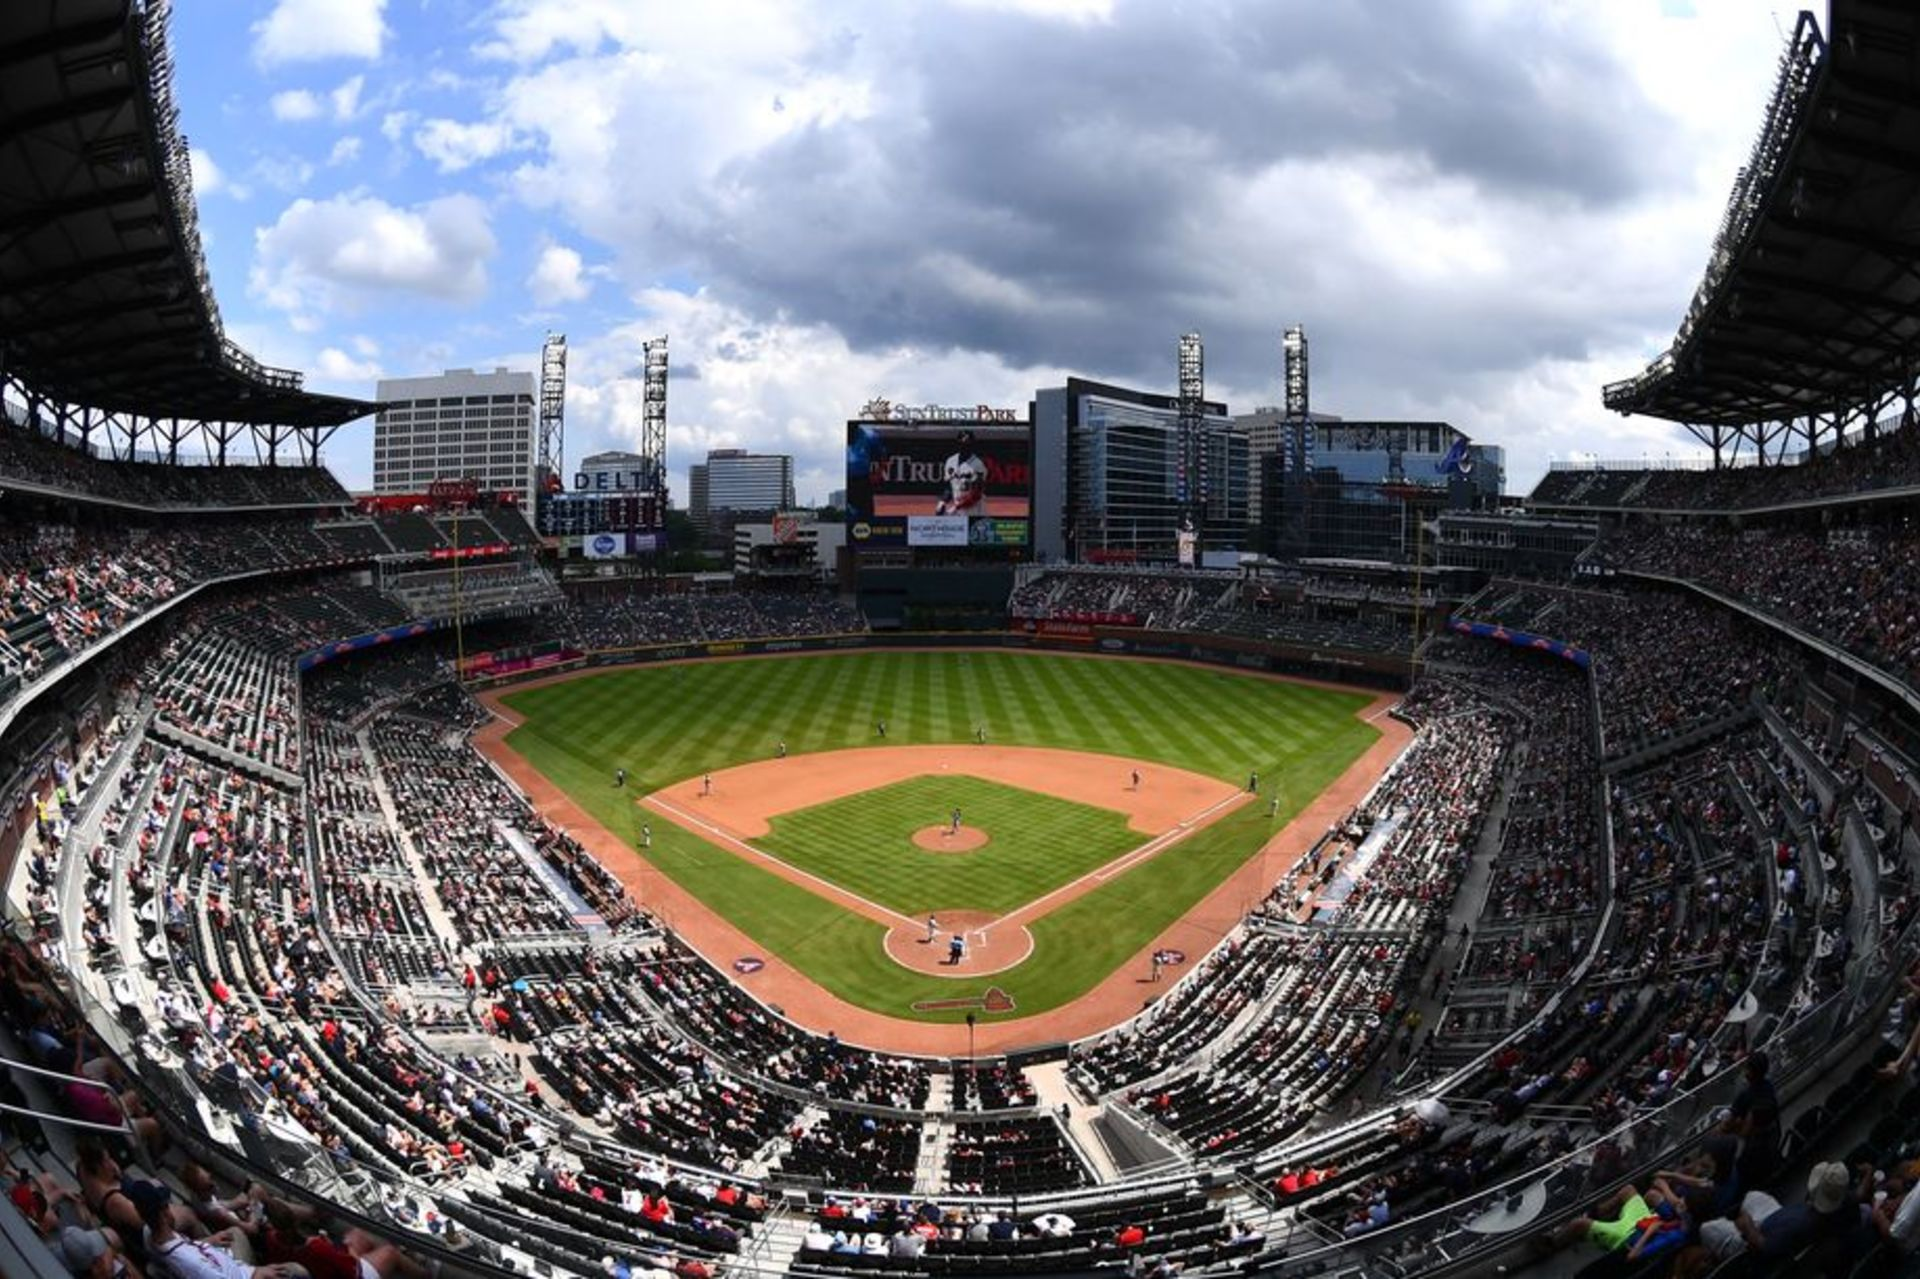 With the Braves in first place, here's what to know about summer at SunTrust Park